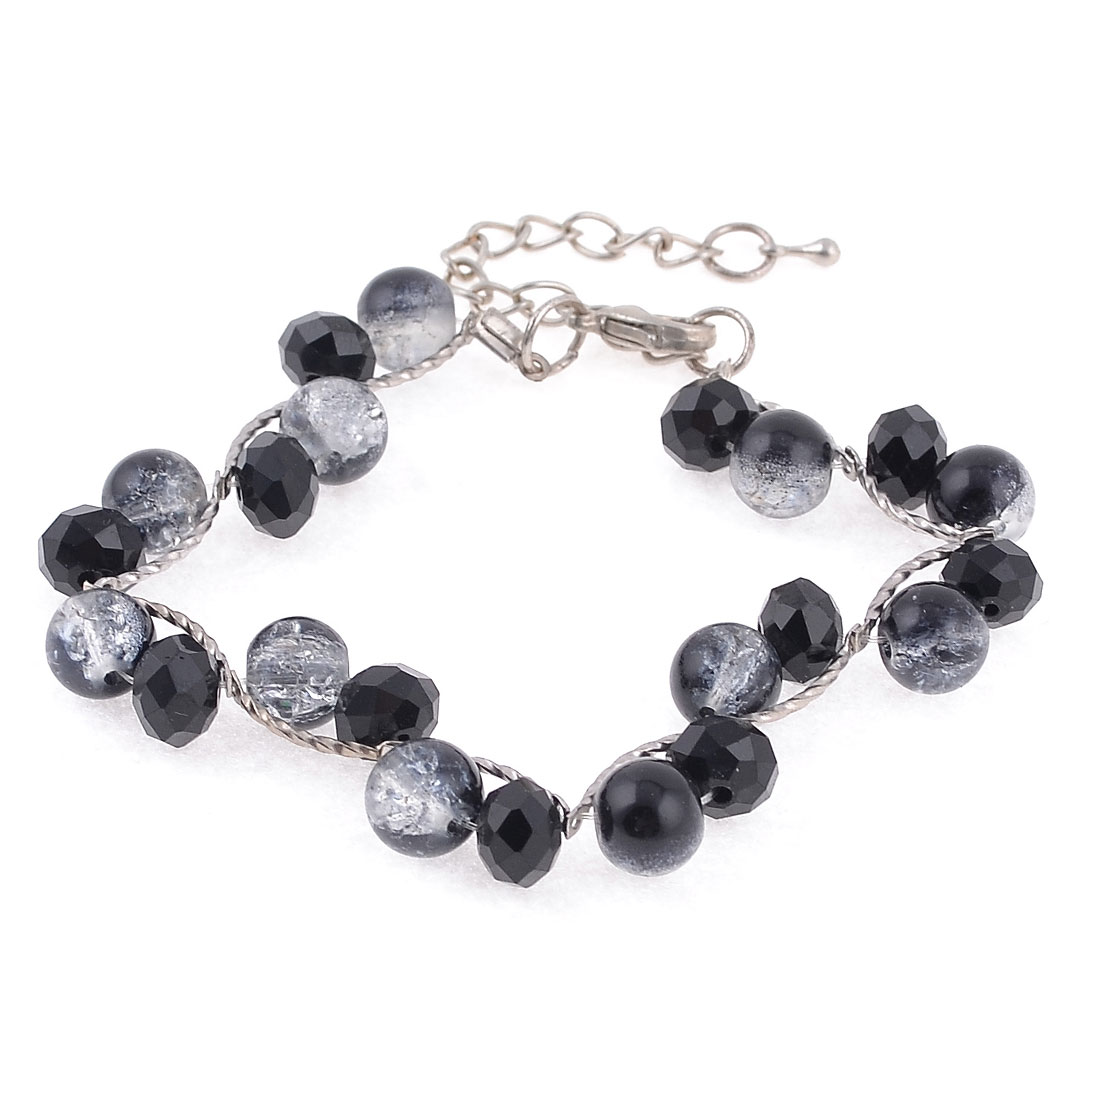 Lady Simulated Plastic Beads Bracelet Bangle Silver Tone Black